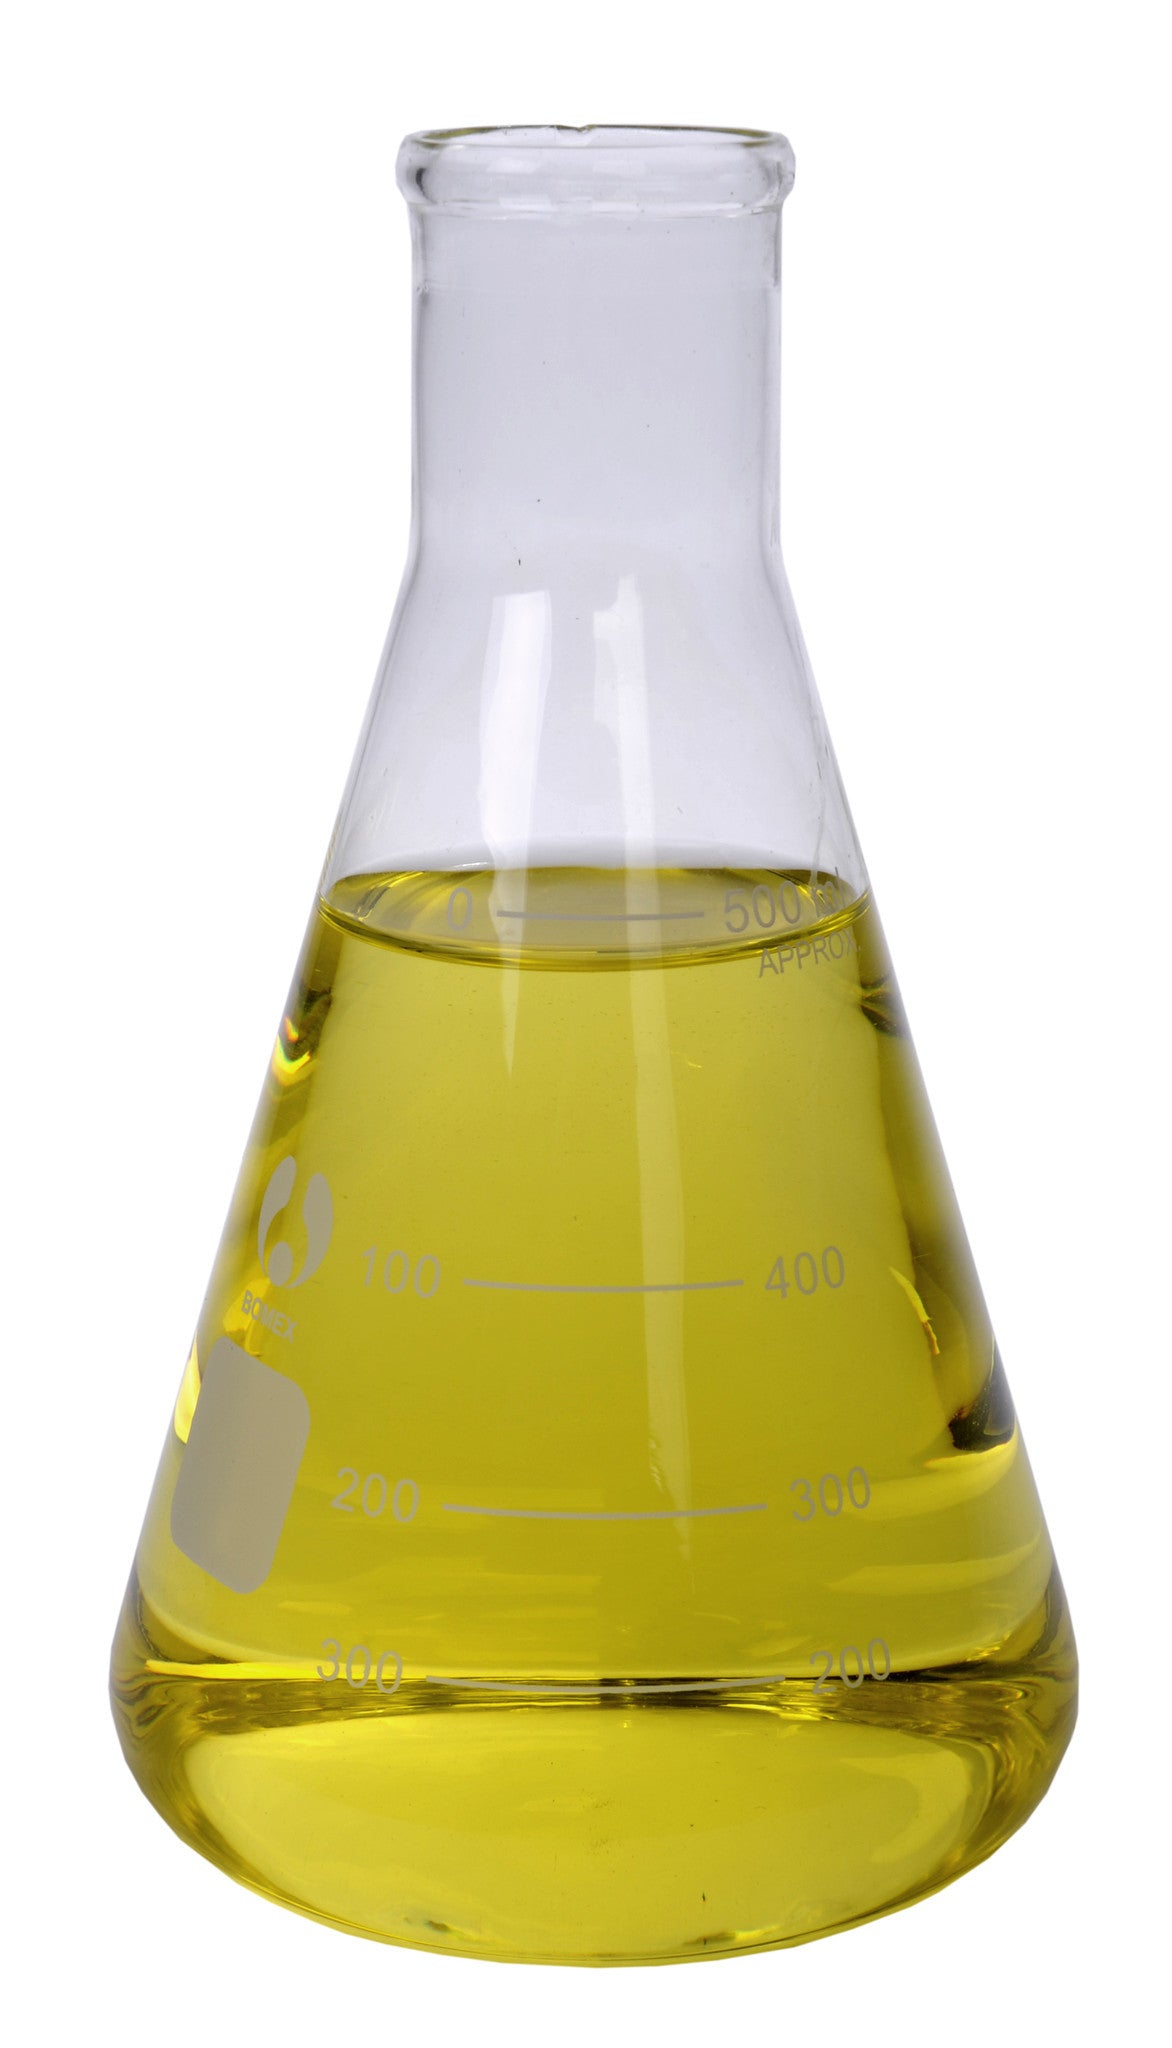 Erlenmeyer Flask ~ 500mL - The Science Shop